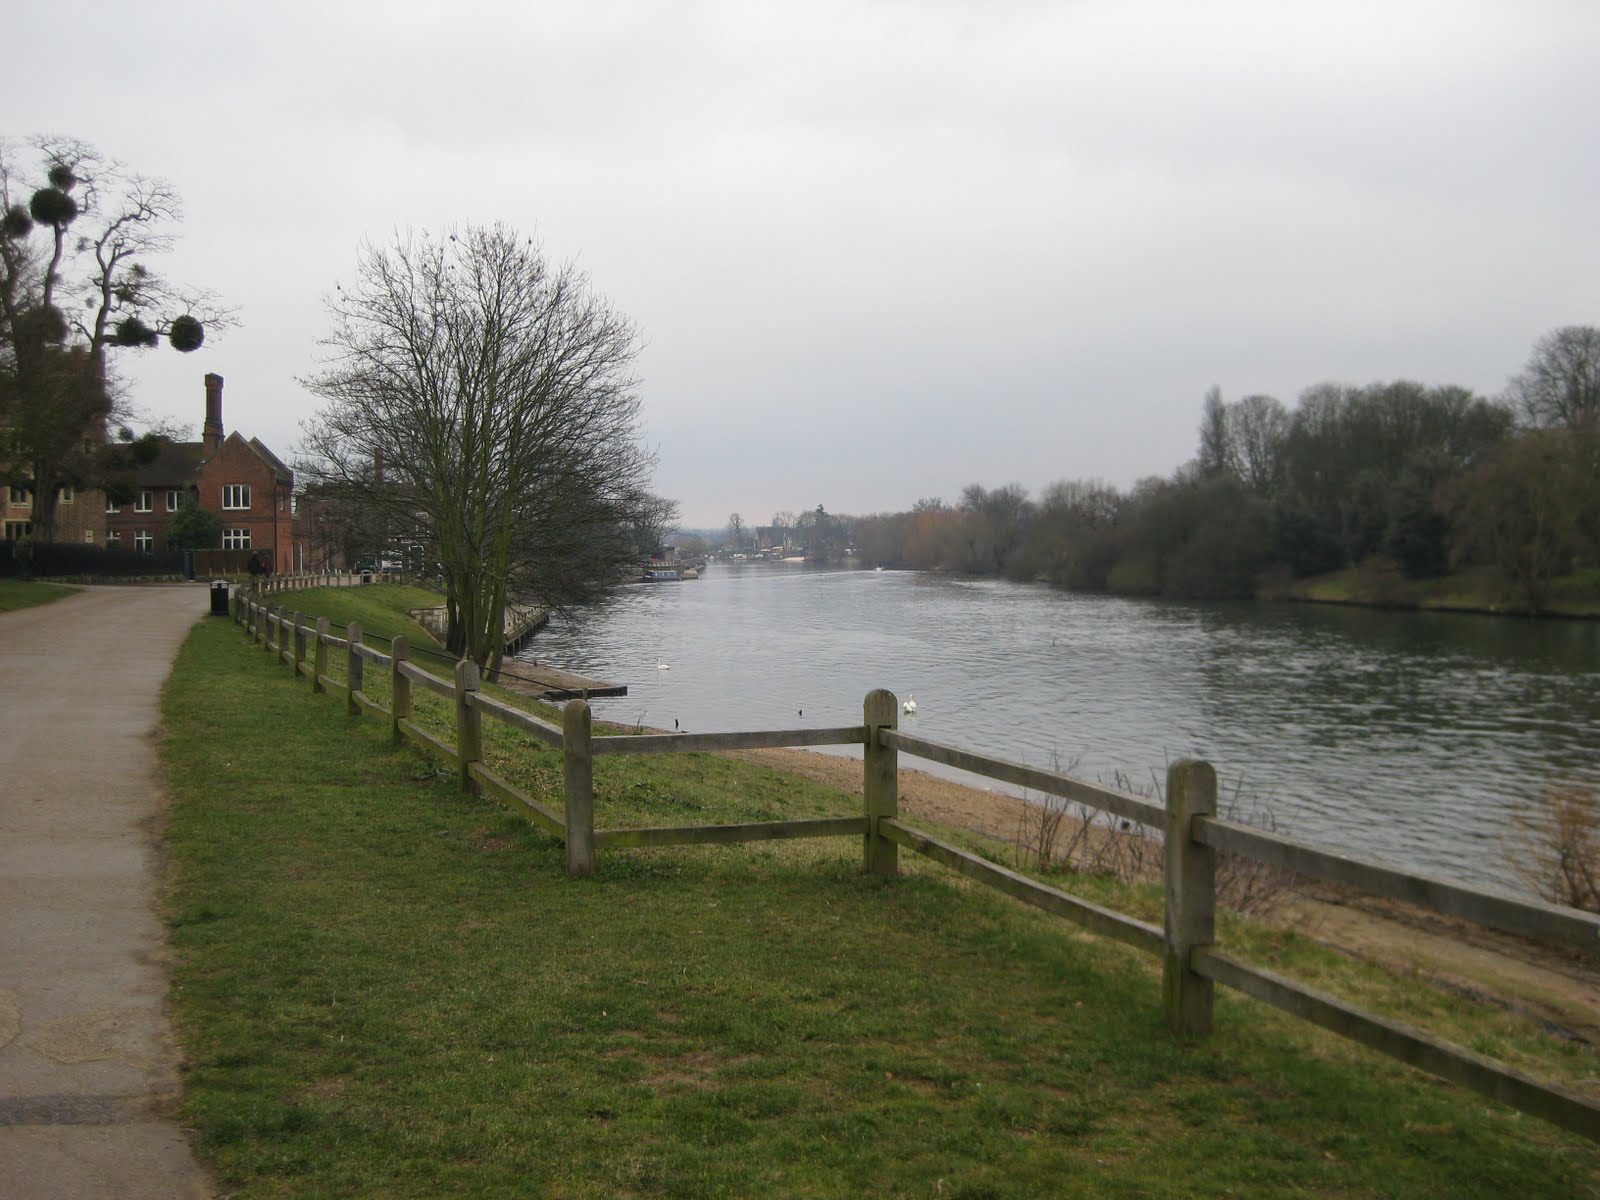 Alongside the Thames